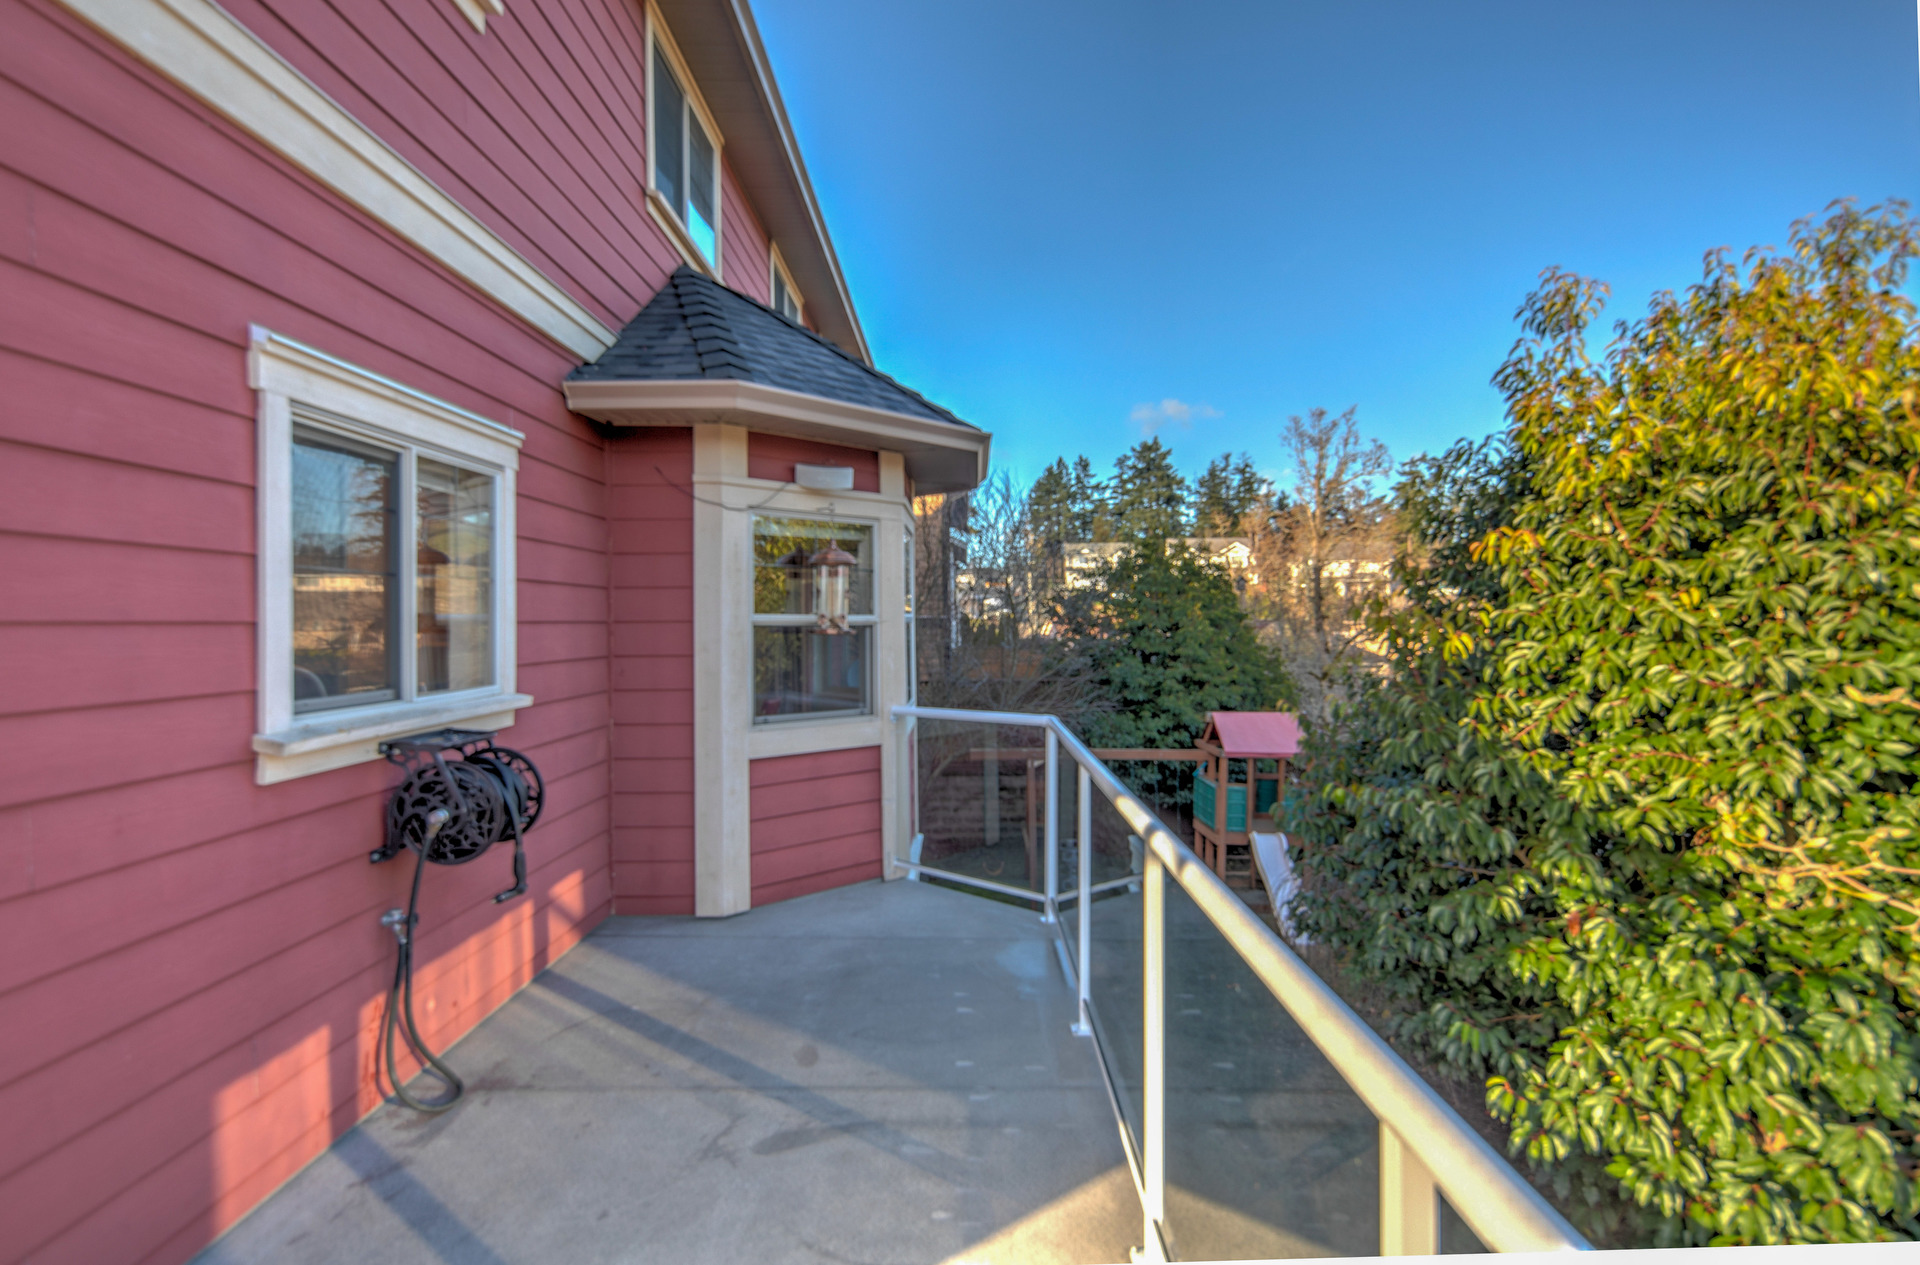 Balcony Overlooking The Backyard at 2741 Cornerstone Terrace, Mill Hill, Langford